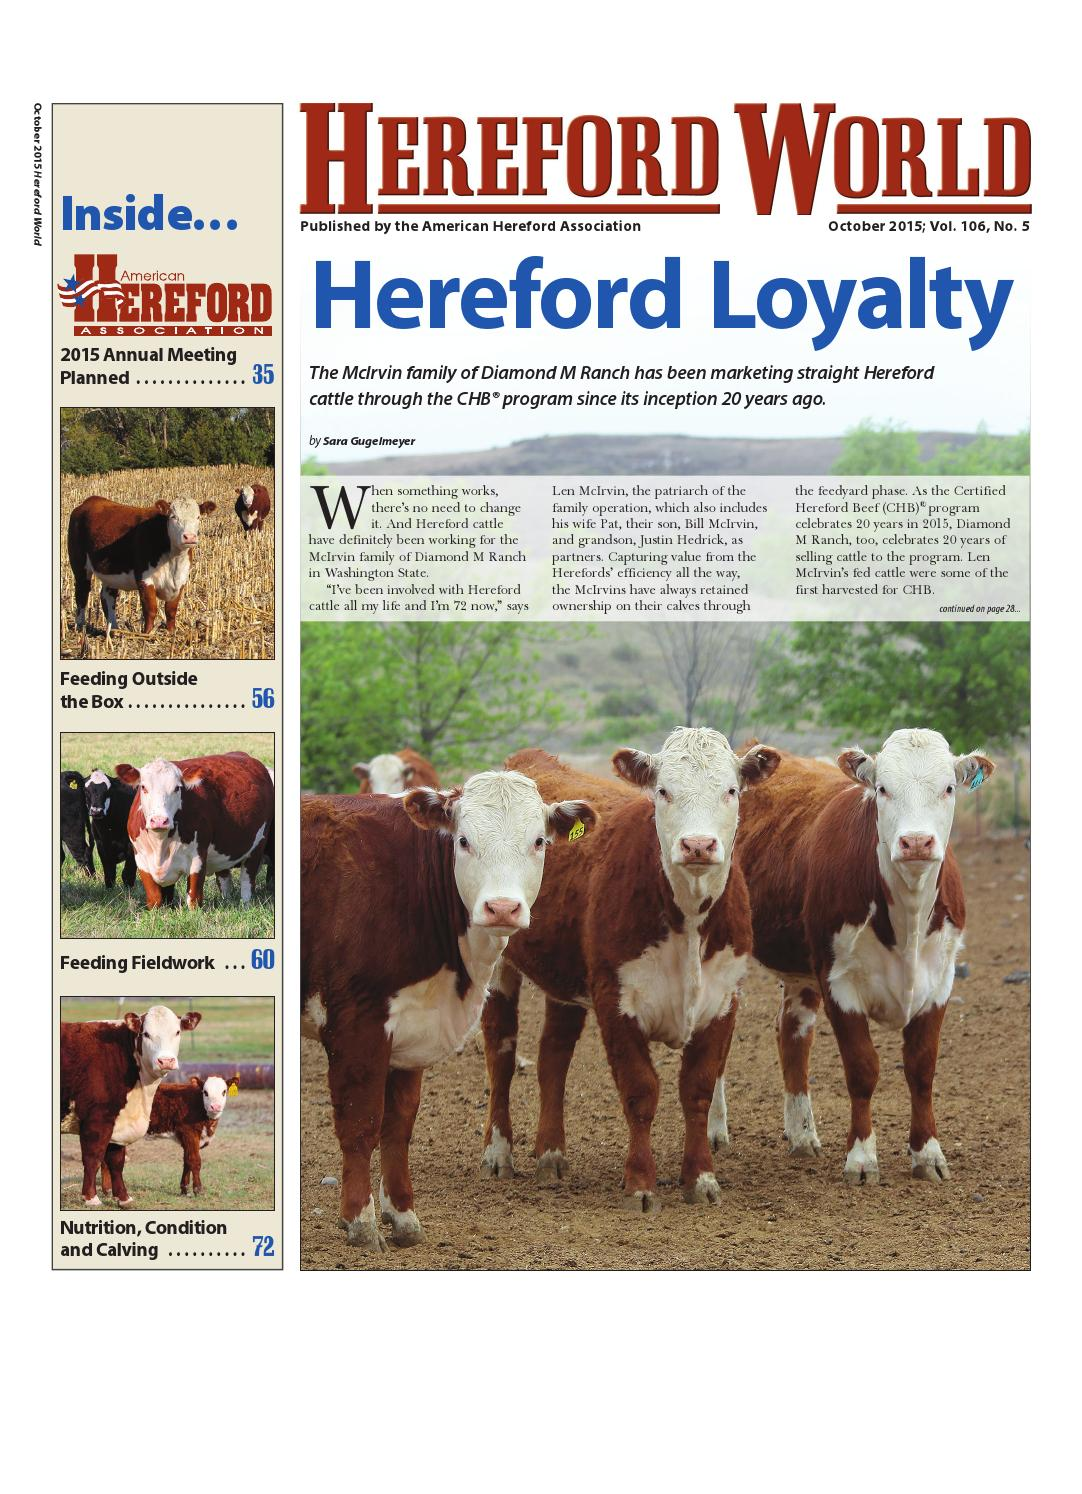 October 2015 hereford world by american hereford association and october 2015 hereford world by american hereford association and hereford world issuu kristyandbryce Images